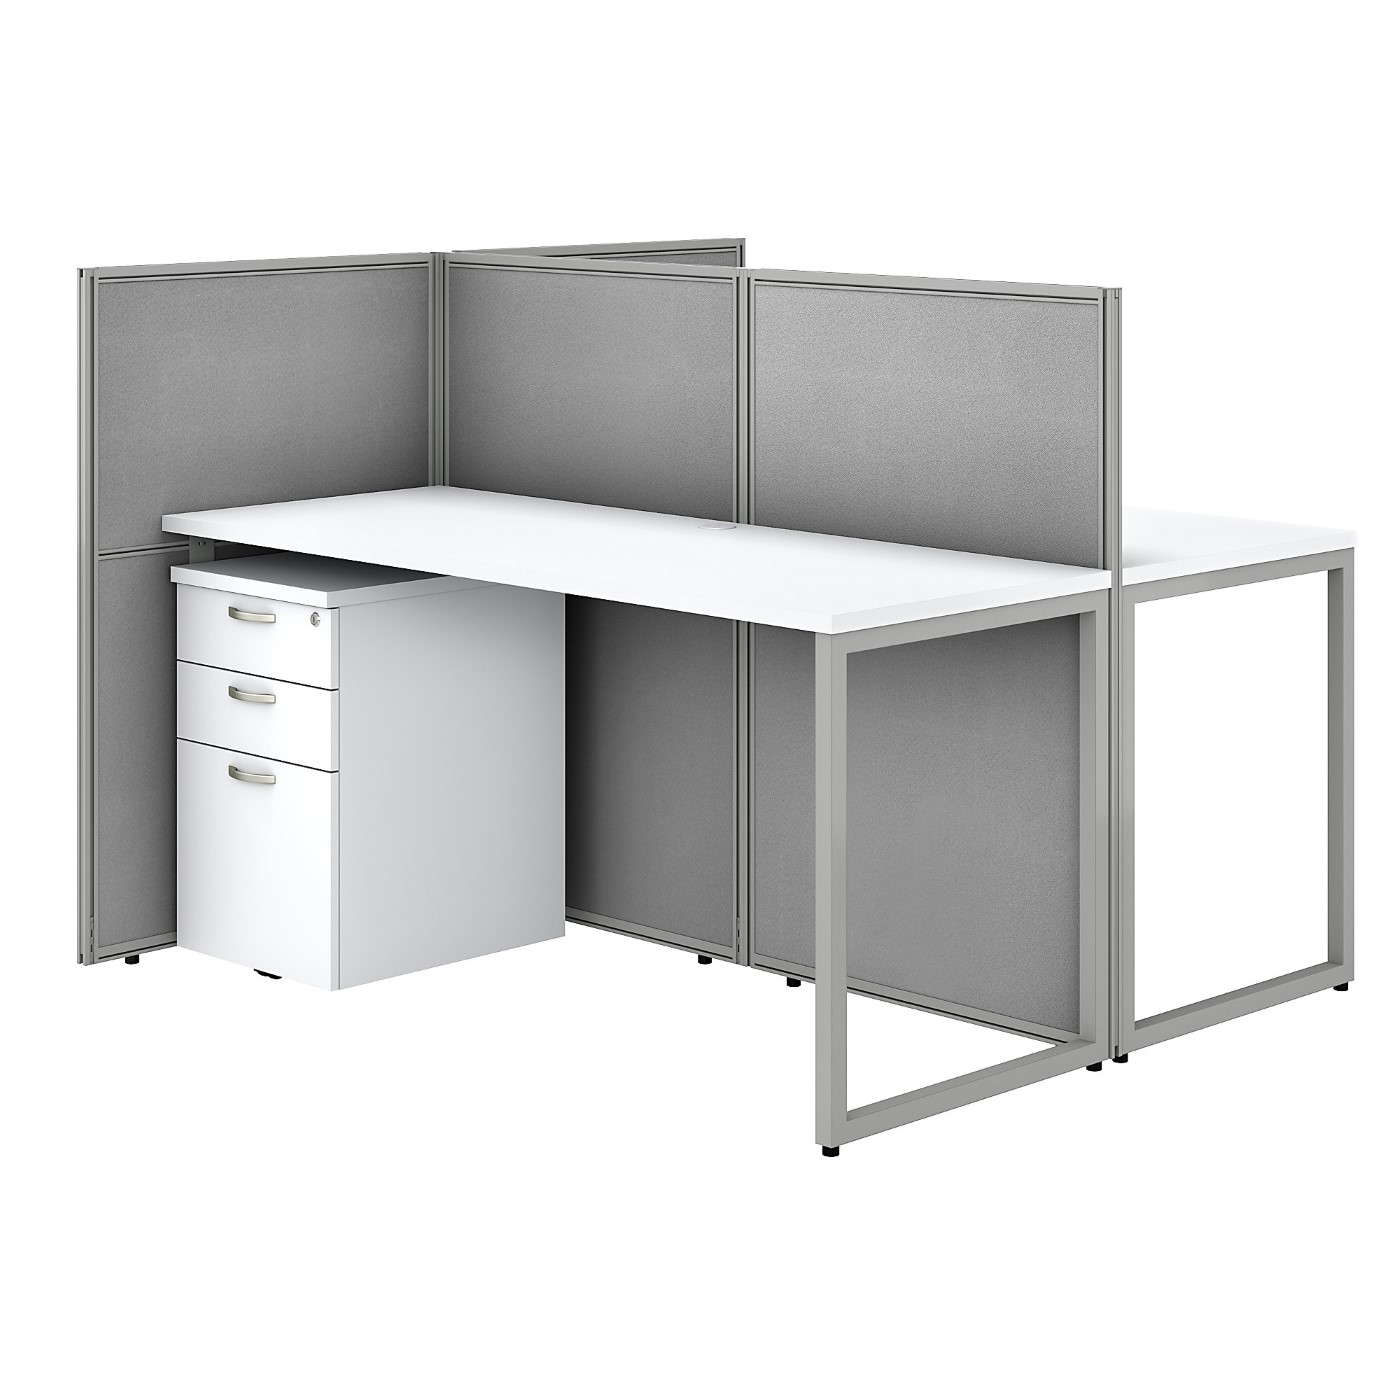 BUSH BUSINESS FURNITURE EASY OFFICE 60W 2 PERSON CUBICLE DESK WITH FILE CABINETS AND 45H PANELS. FREE SHIPPING